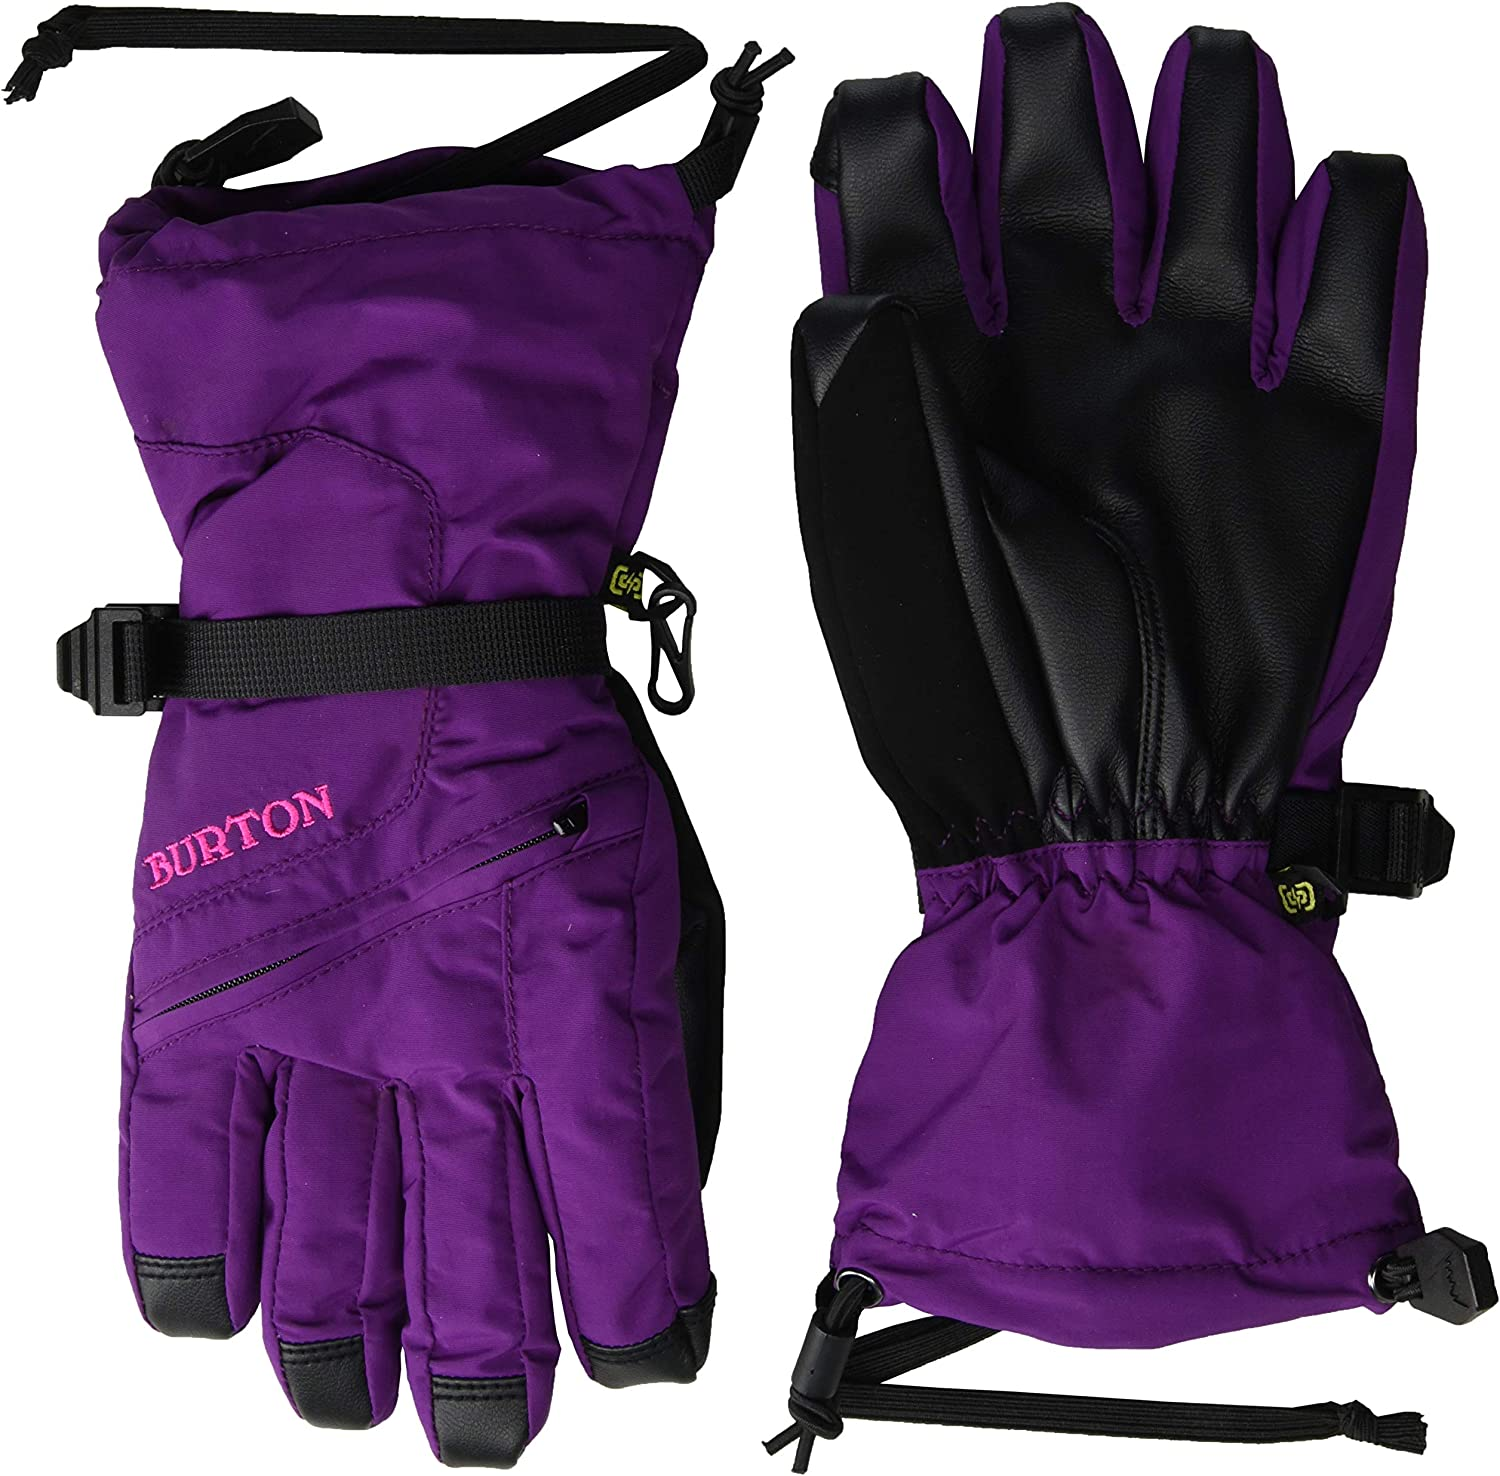 Top 10 Best Ski Gloves For Kids (2020 Reviews & Buying Guide) 3